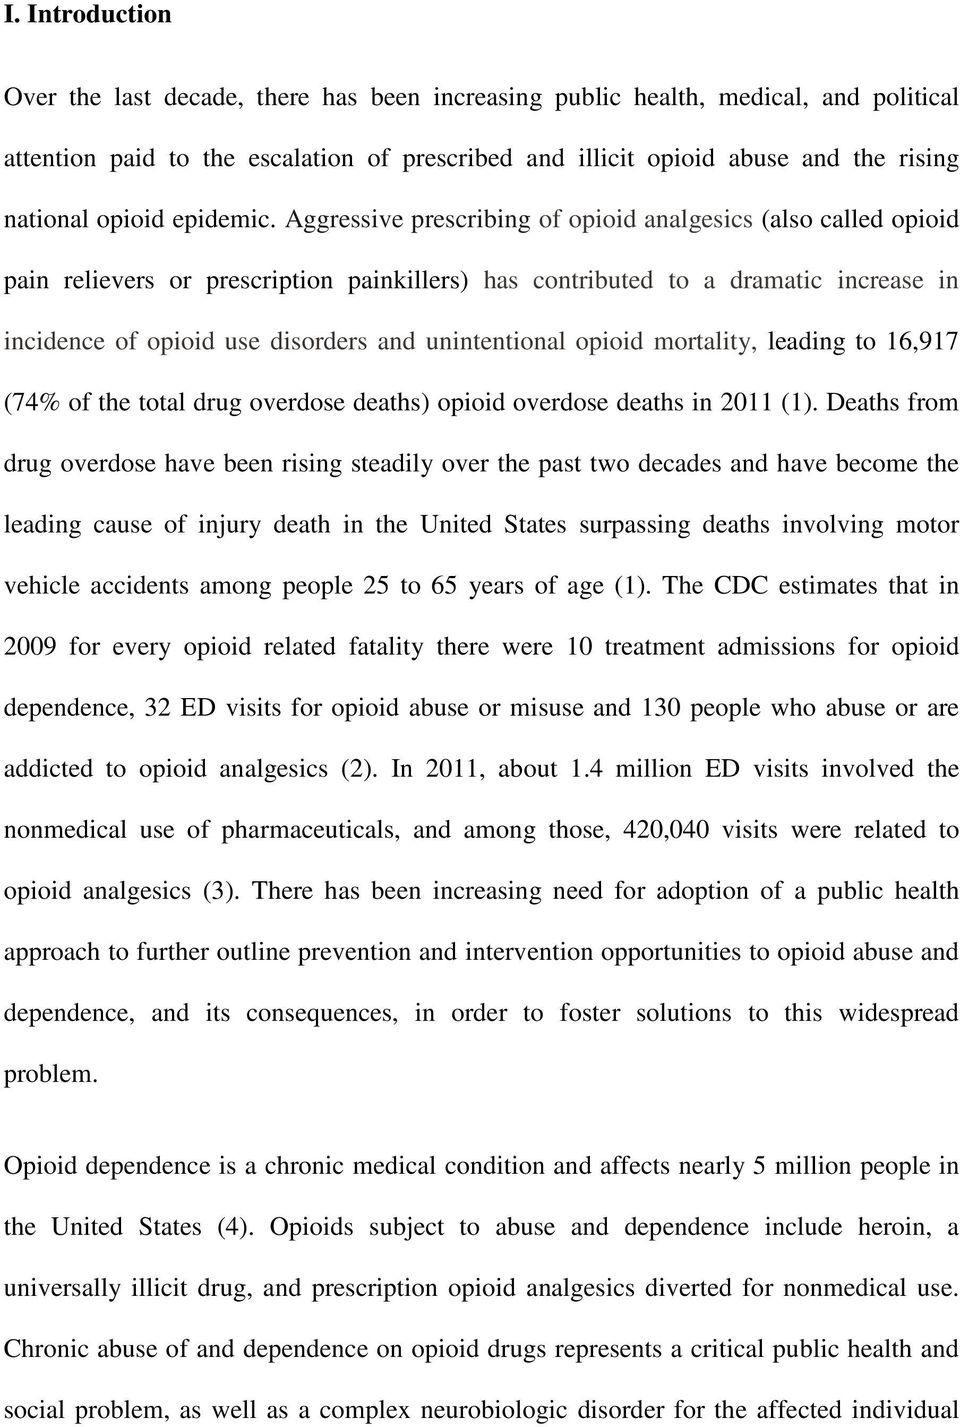 Aggressive prescribing of opioid analgesics (also called opioid pain relievers or prescription painkillers) has contributed to a dramatic increase in incidence of opioid use disorders and